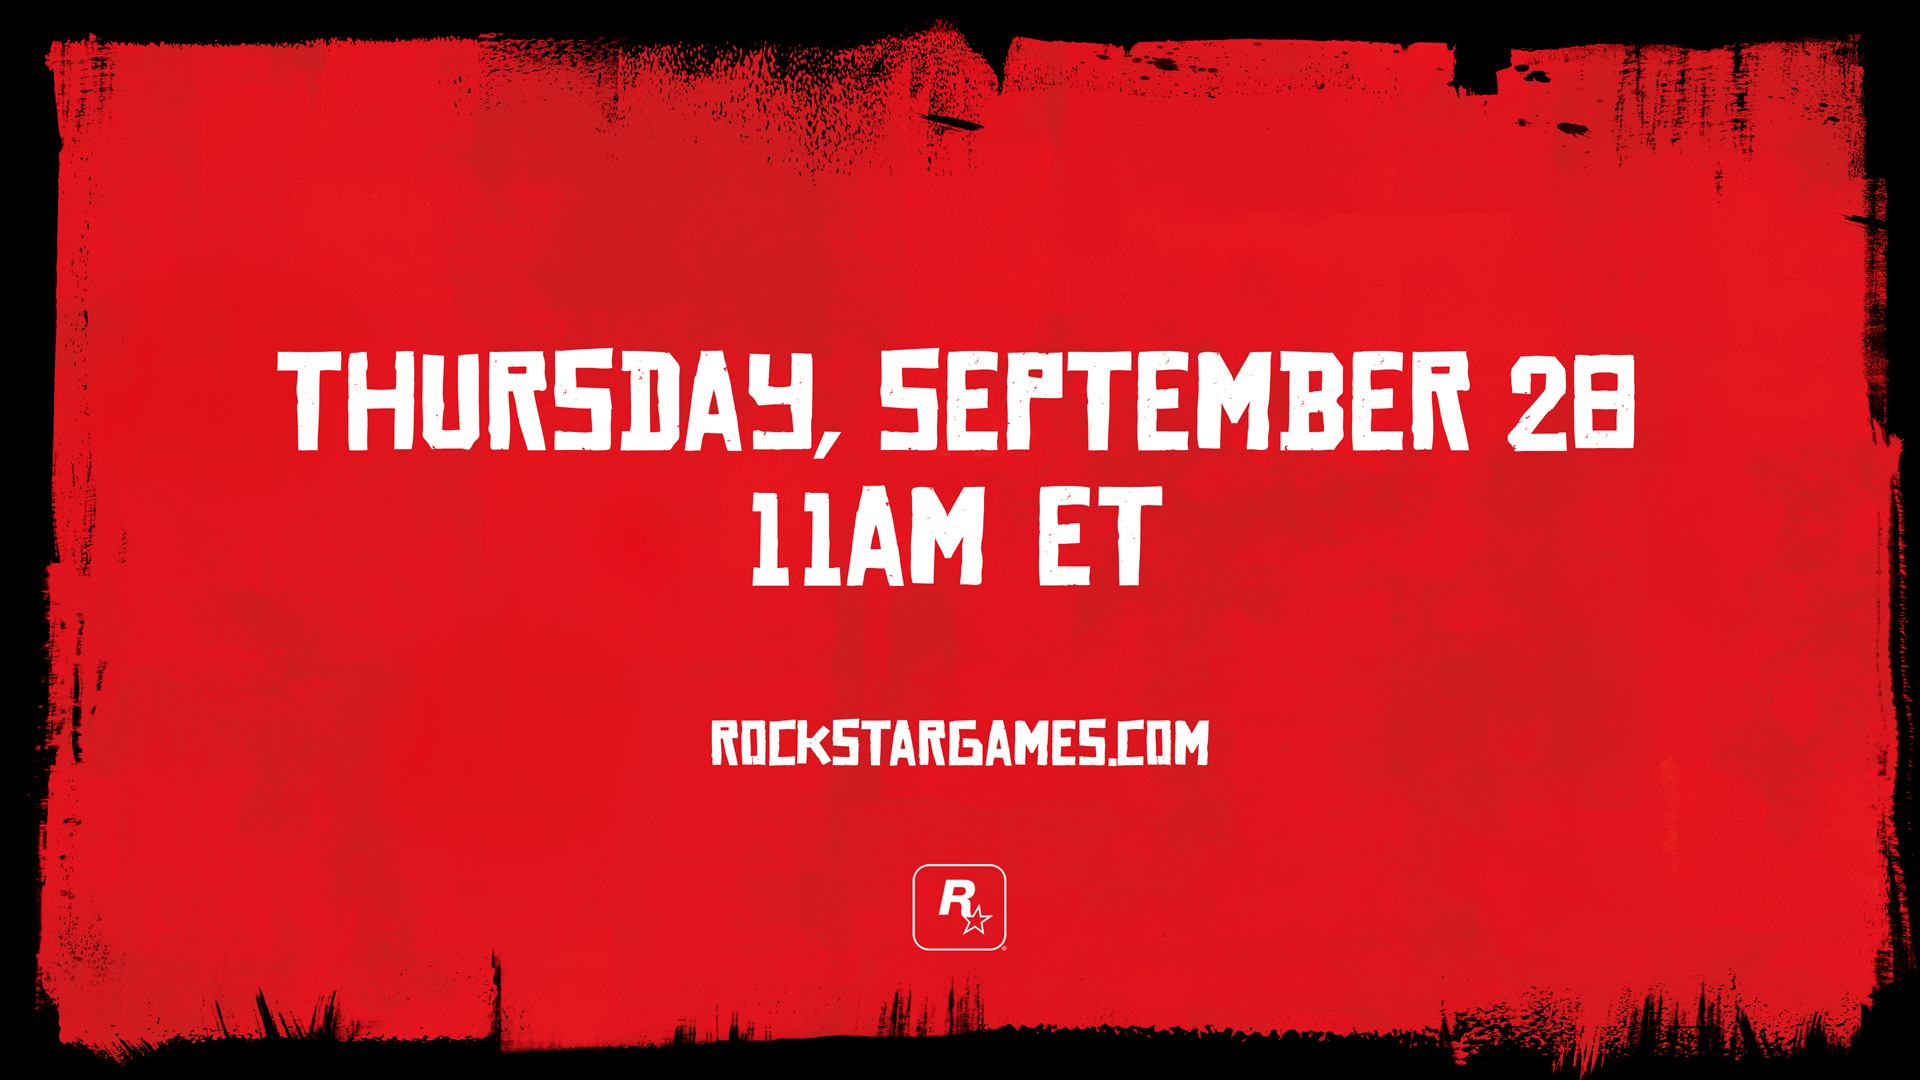 Rockstar teases new Red Dead Redemption 2 info